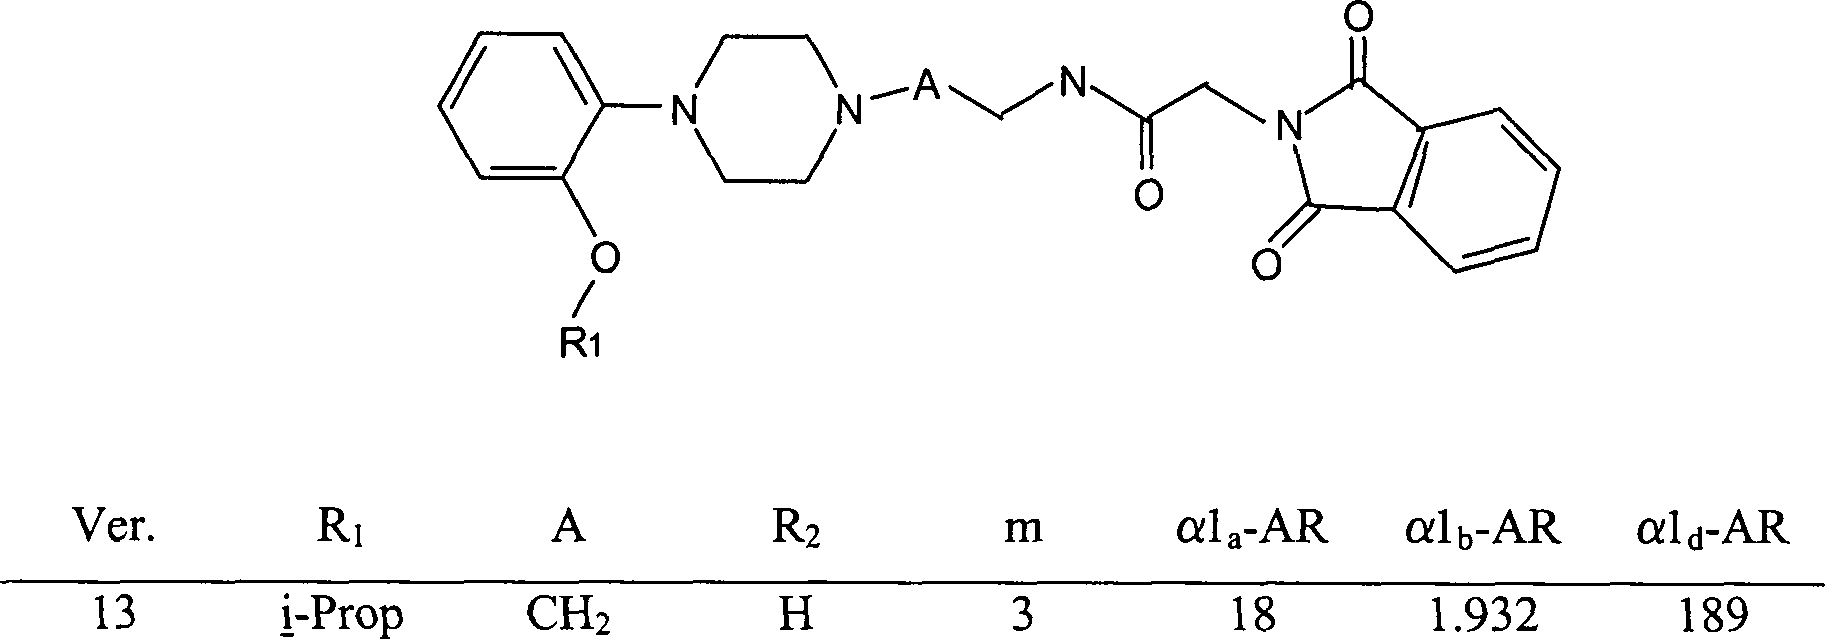 50 år vers DE69818255T2   Aryl substituted piperazines useful in the  50 år vers